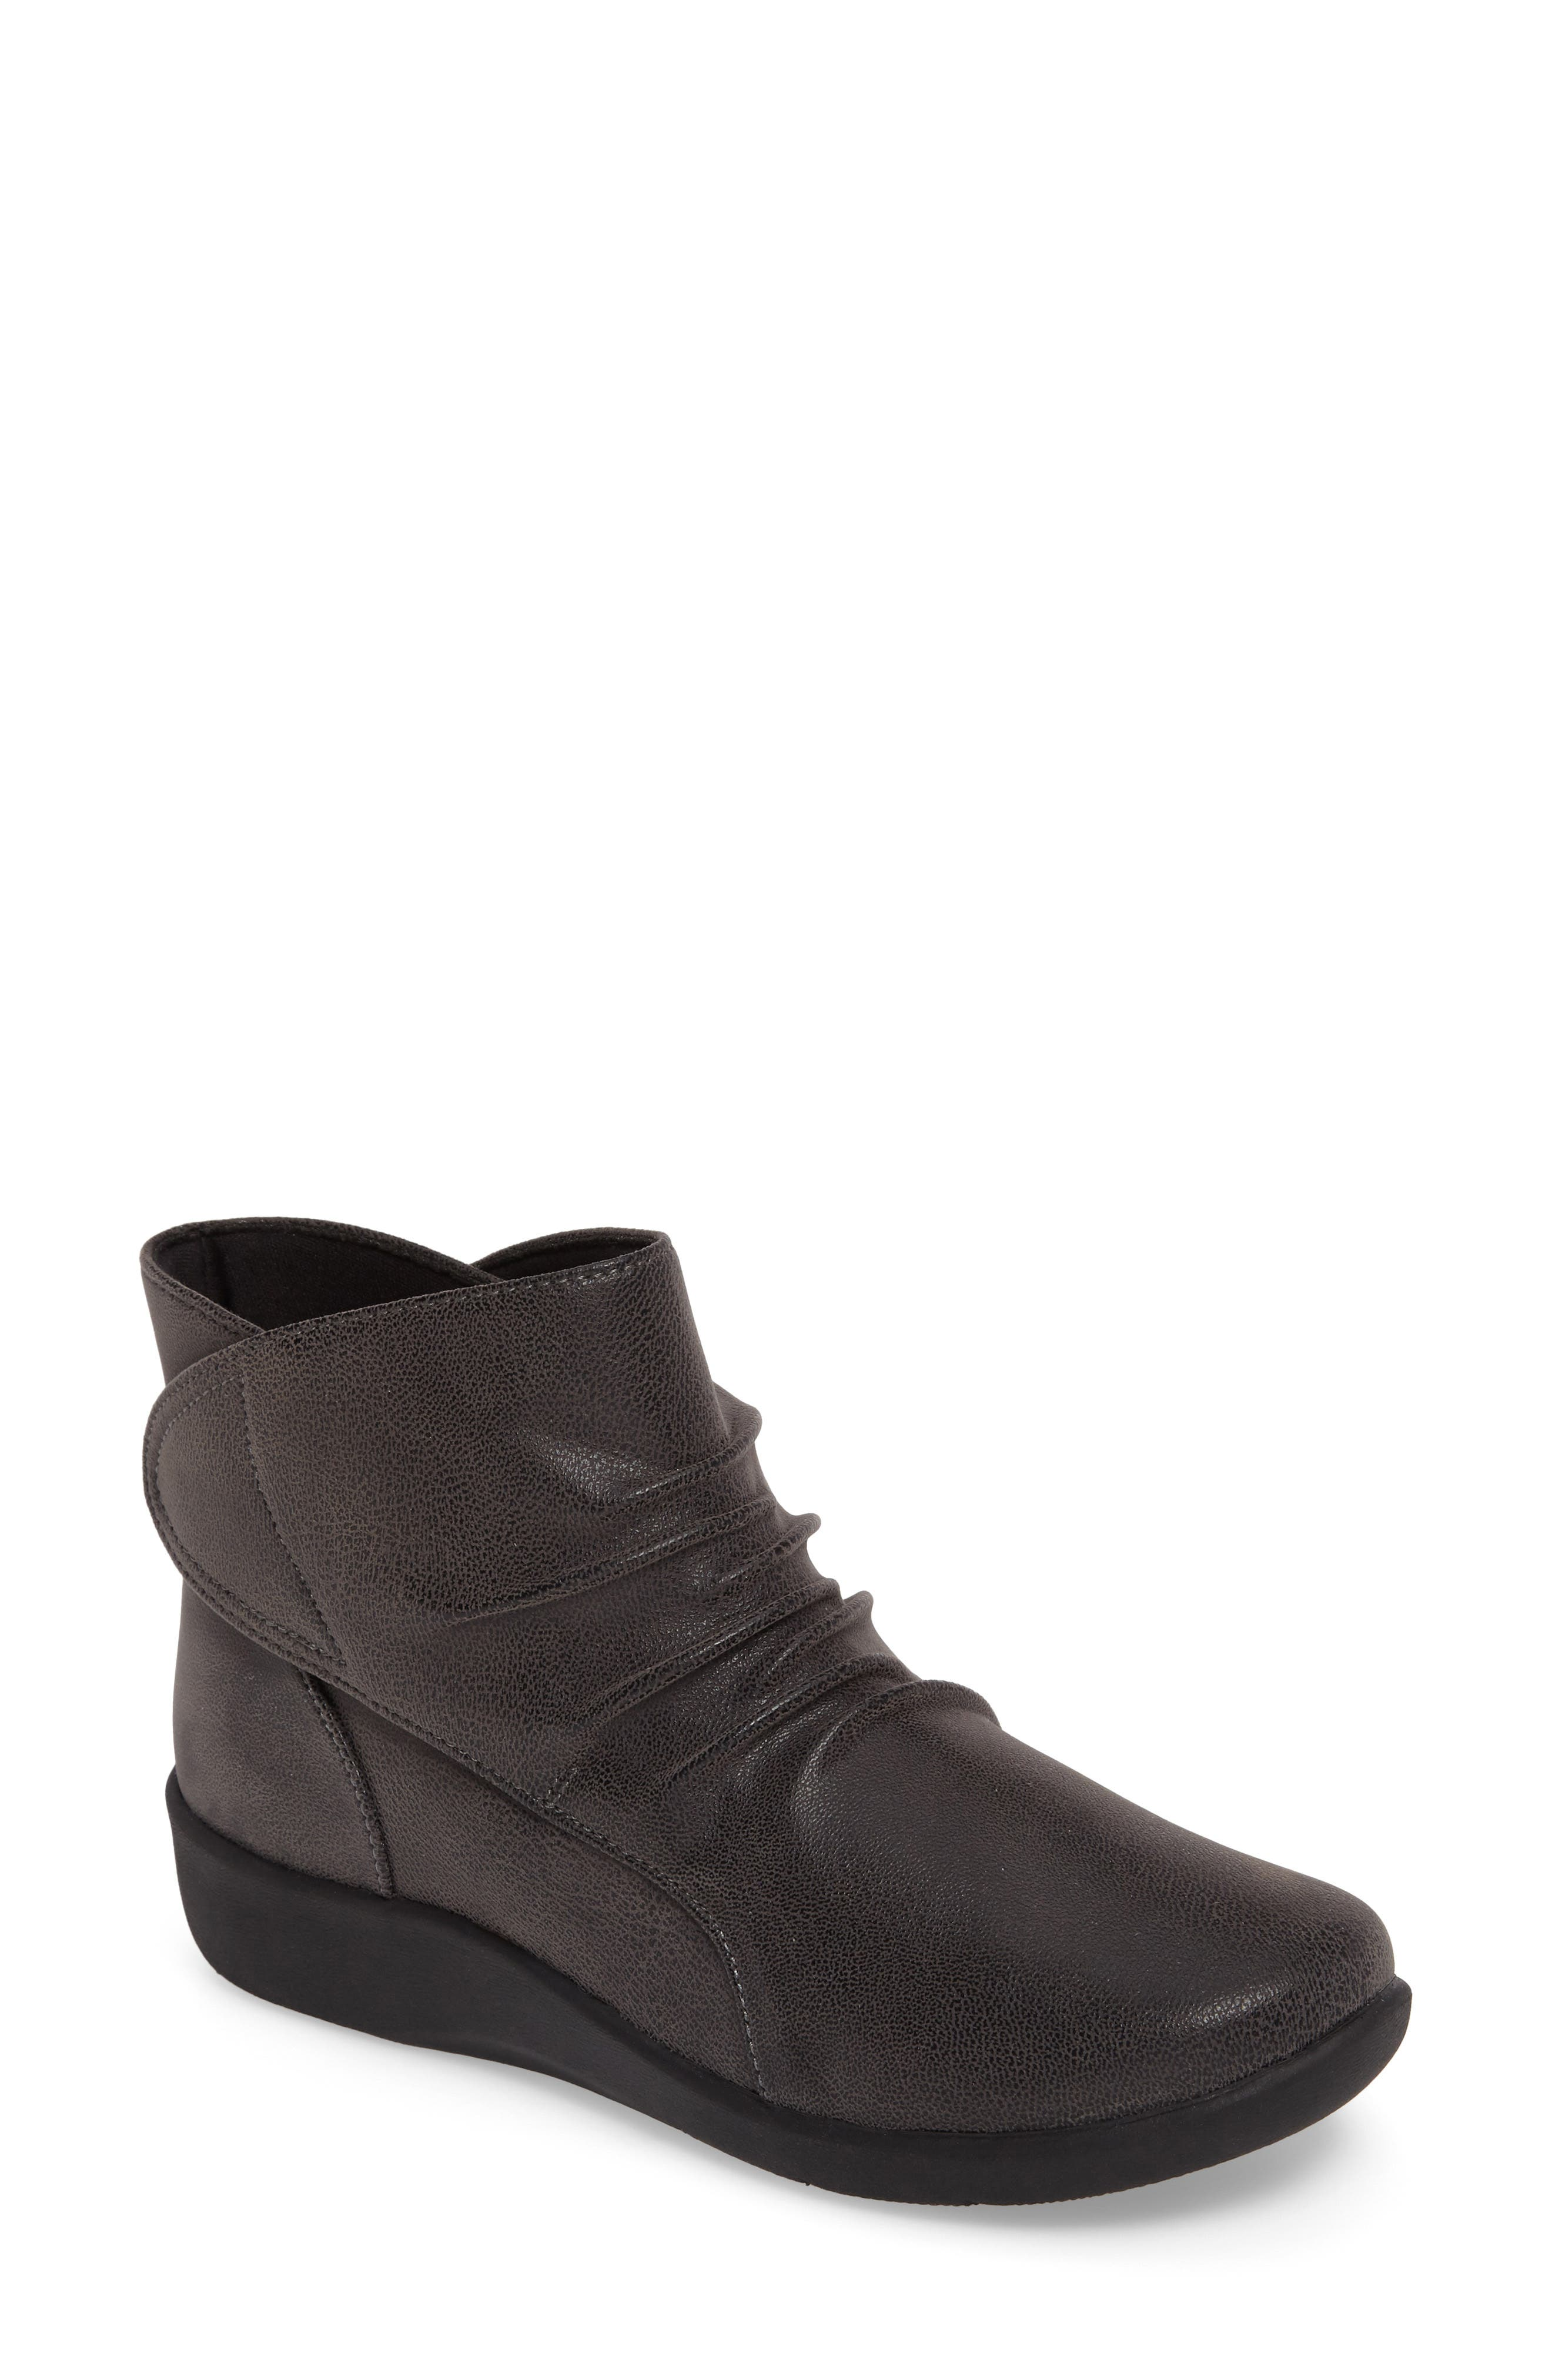 Alternate Image 1 Selected - Clarks® Sillian Sway Boot (Women)